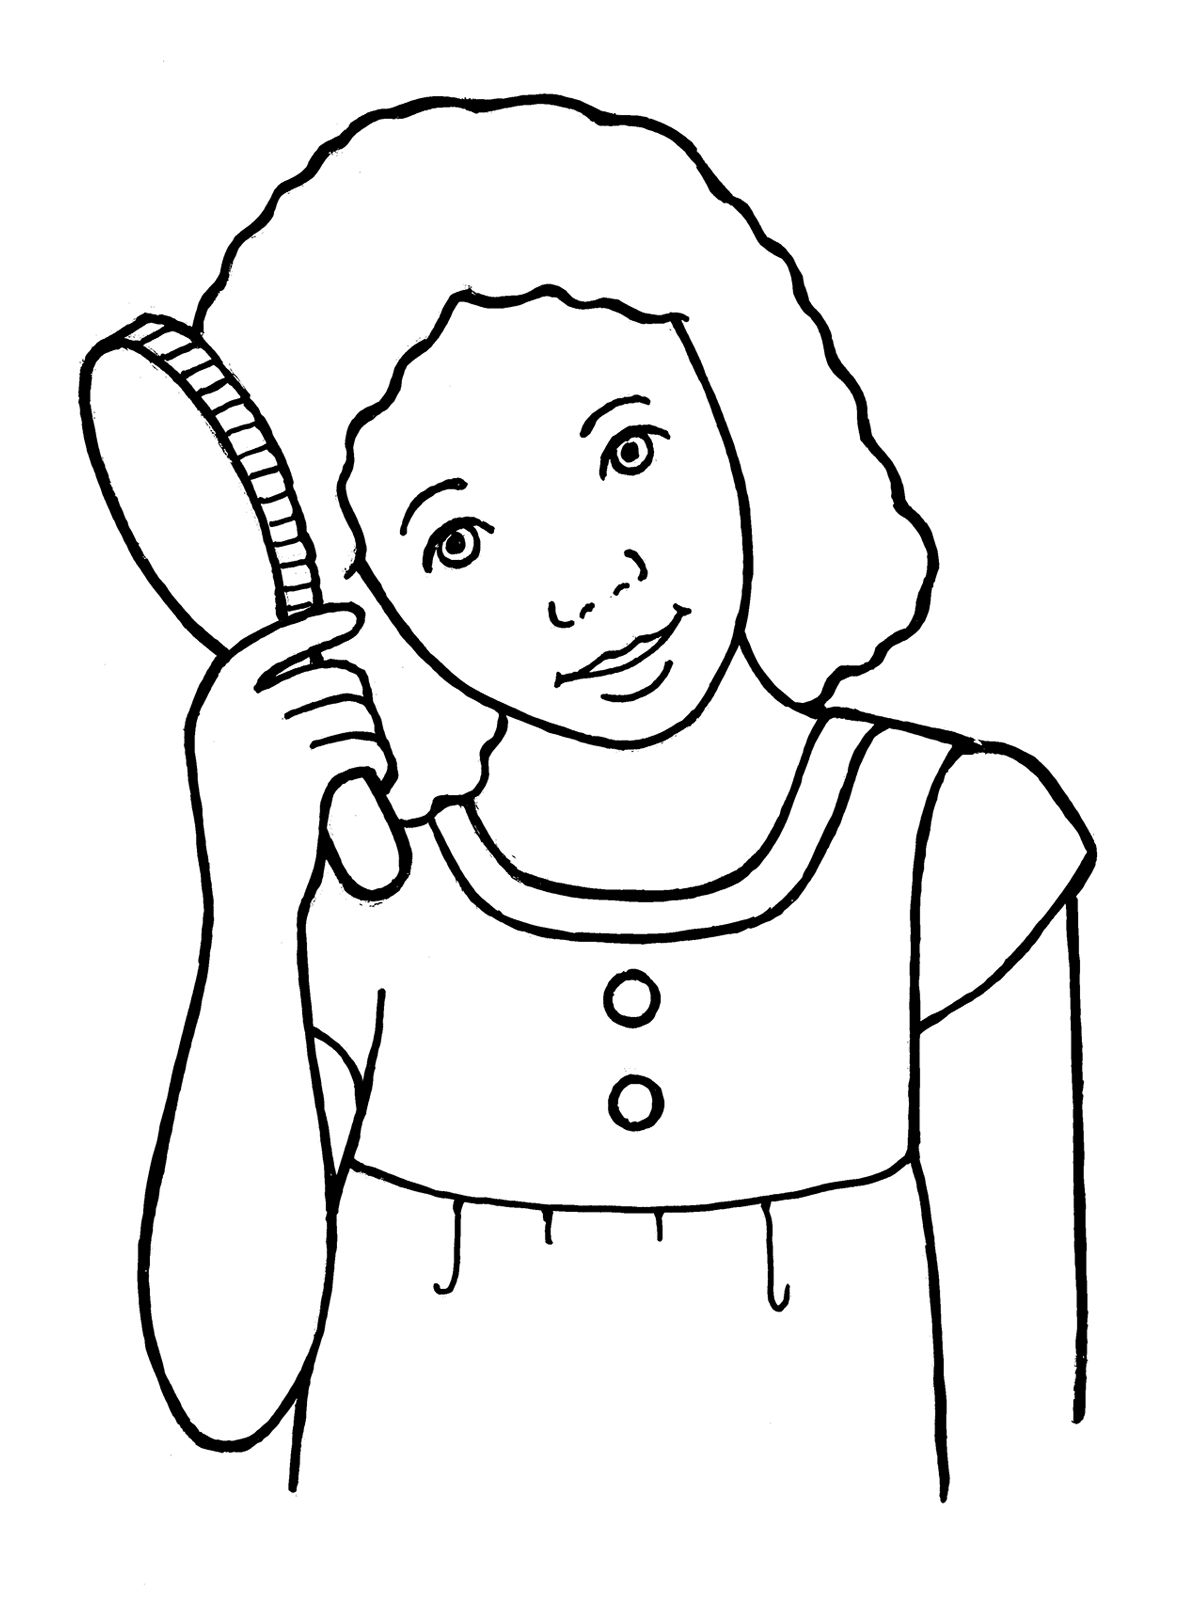 brushing hair coloring pages - photo#9